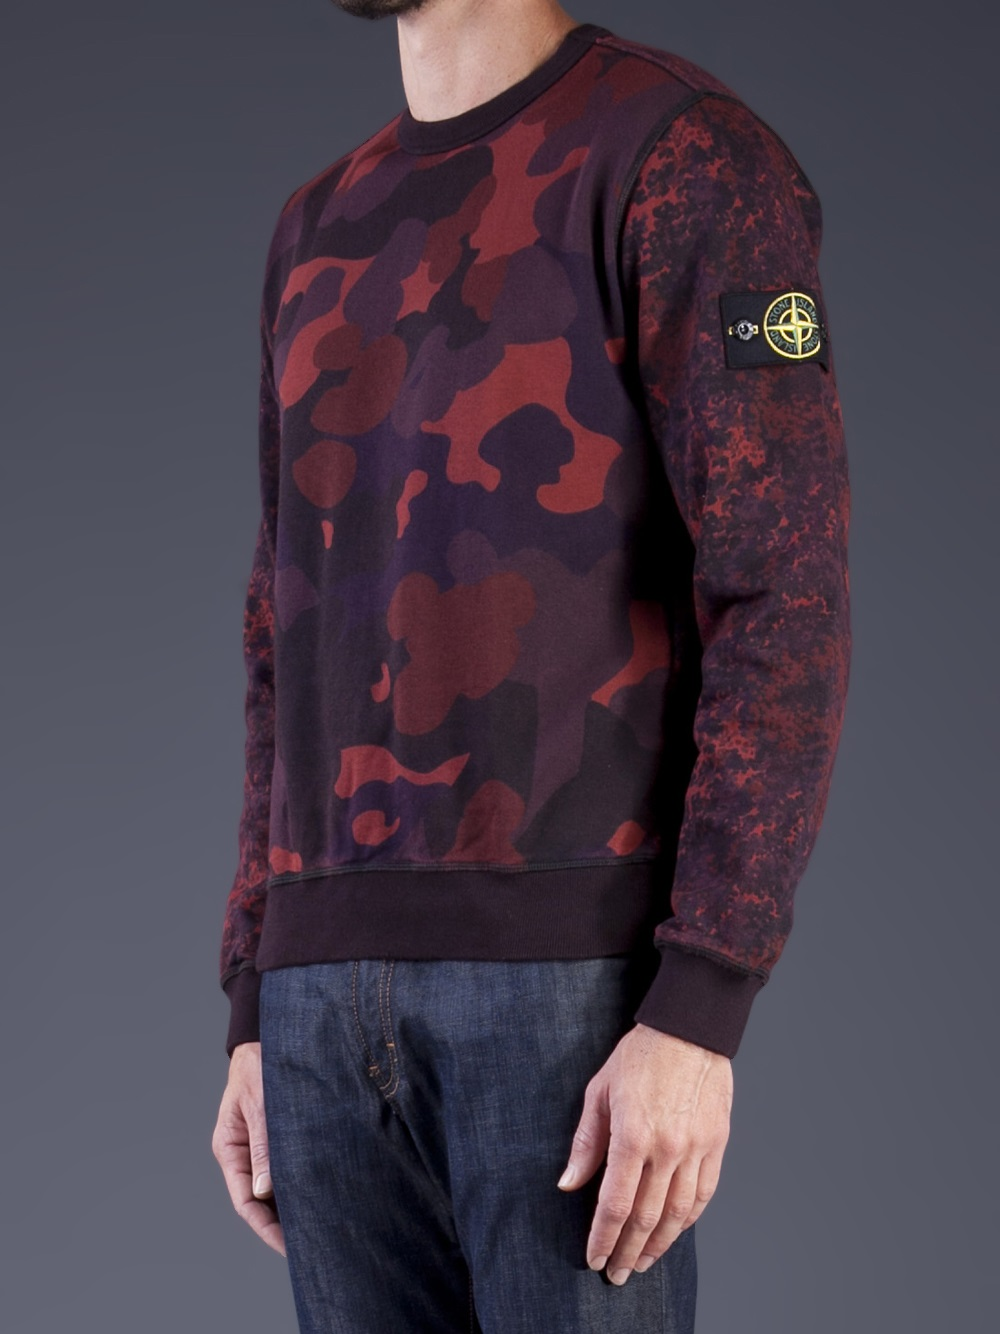 stone island camo print sweatshirt in red for men lyst. Black Bedroom Furniture Sets. Home Design Ideas